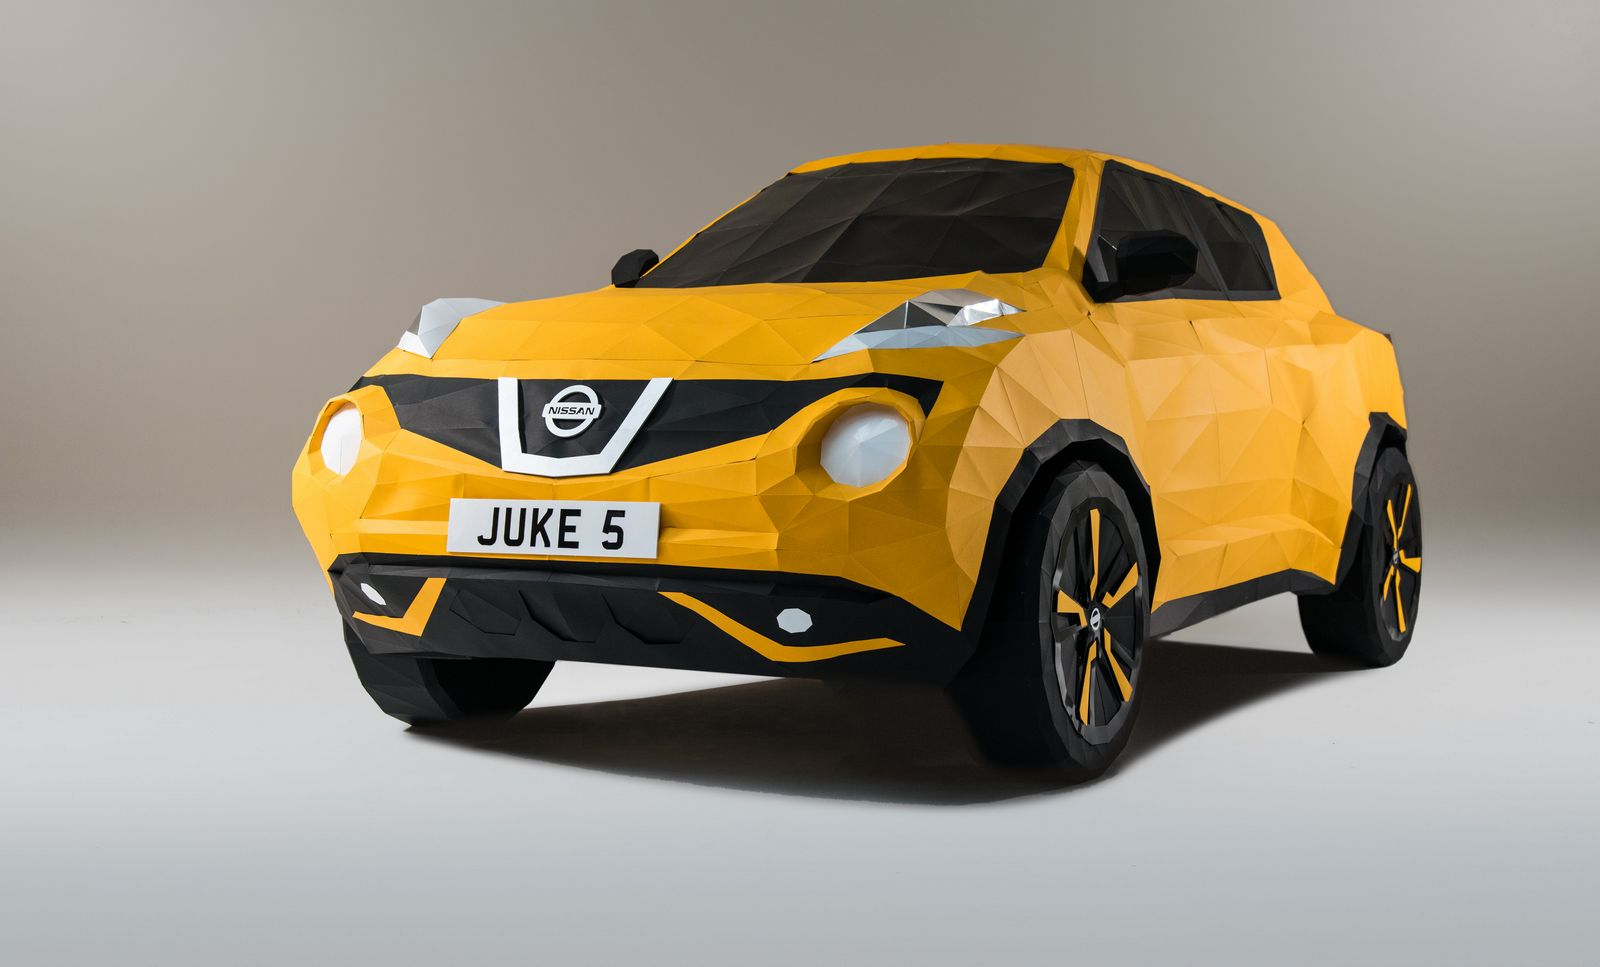 An origami Nissan Juke to celebrate the model's 5th anniversary